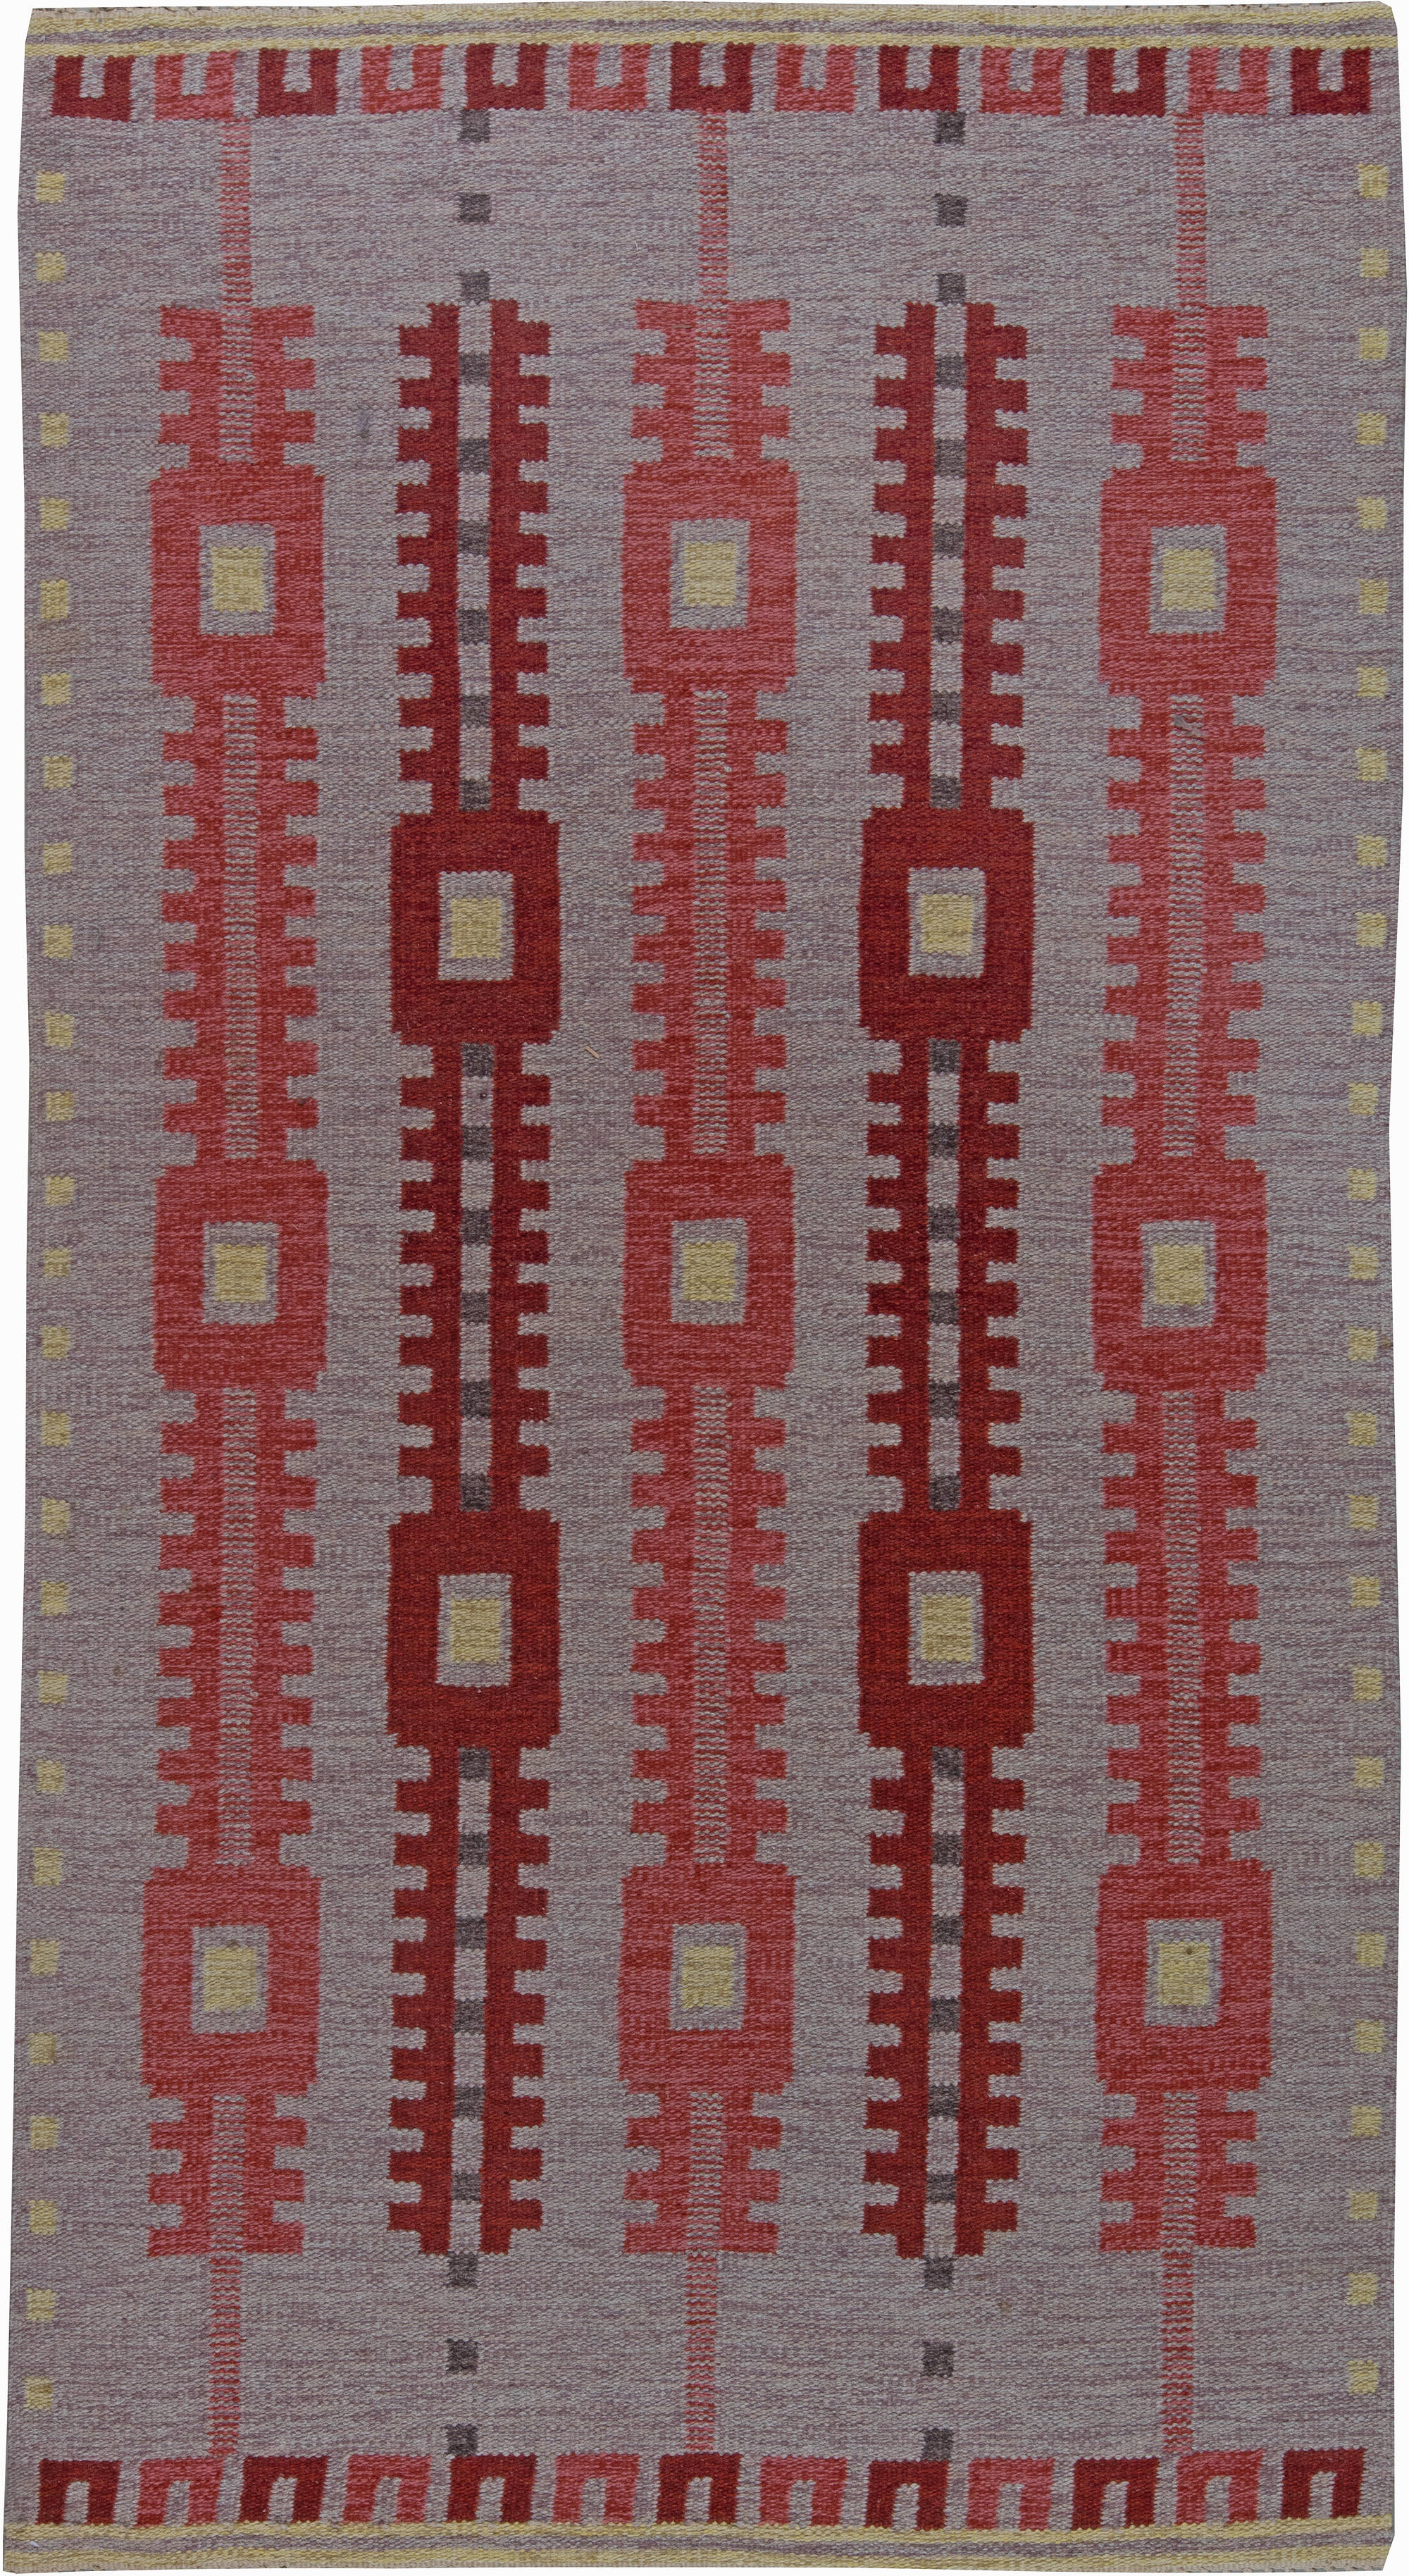 Vintage Swedish Flat Weave Rug BB6240